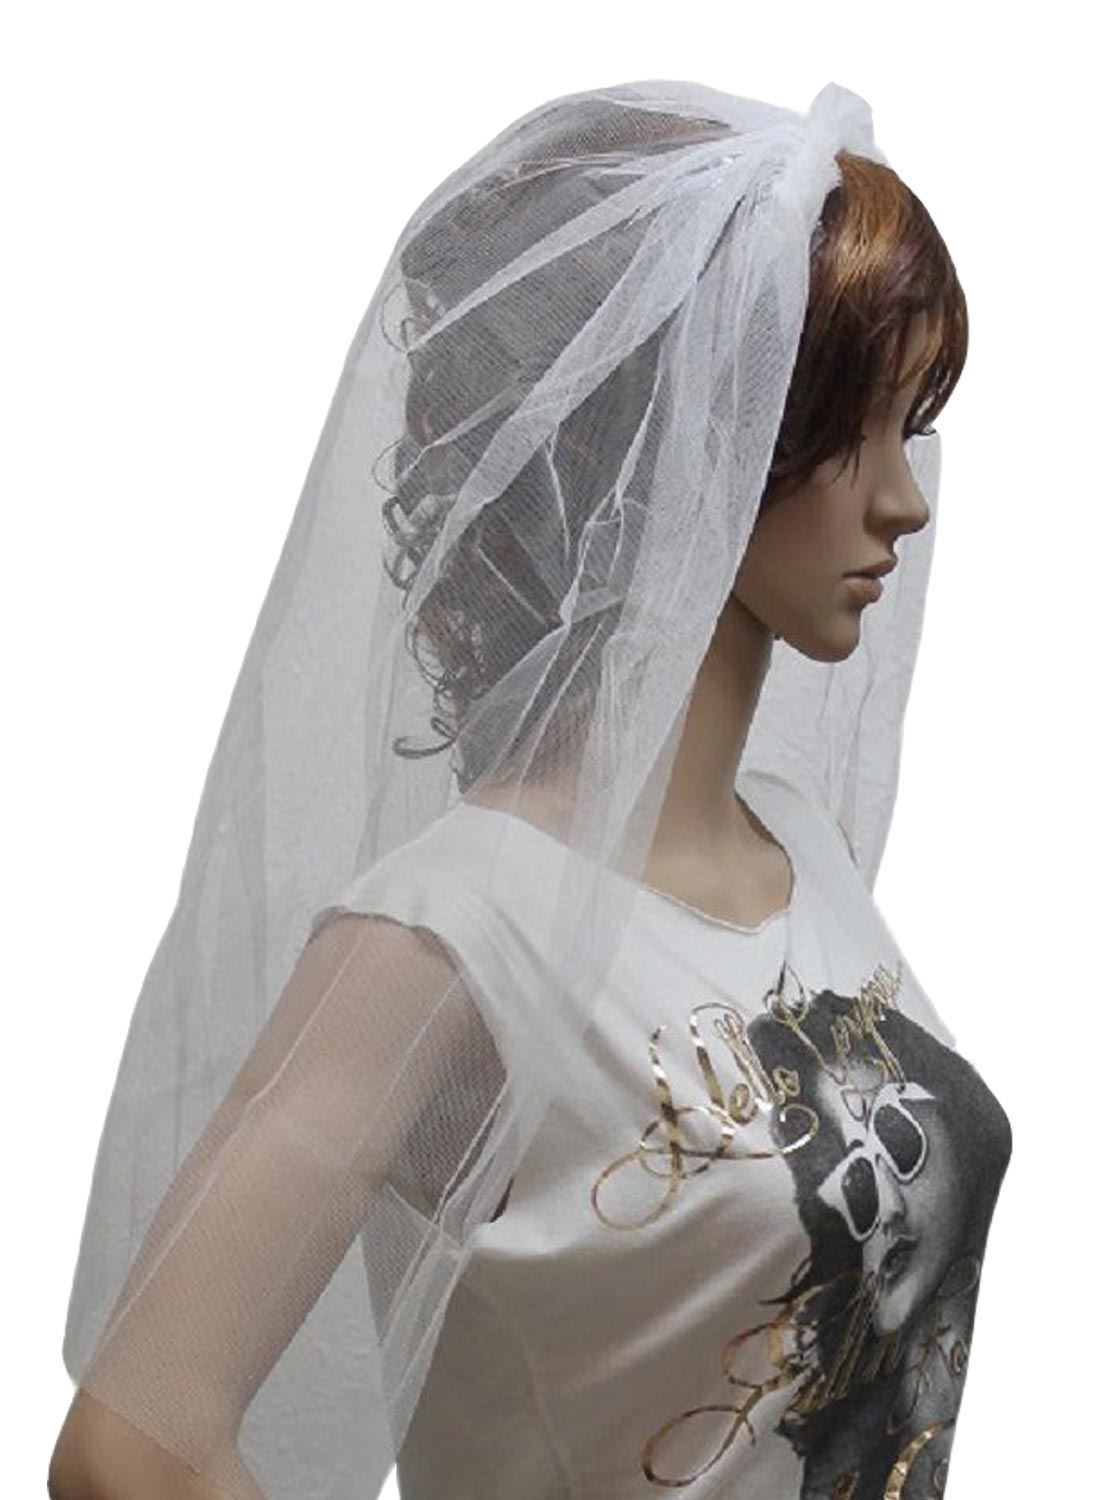 bridal veil asian personals Bridal veils and headpieces can be a traditional ivory, bohemian bhldn (pronounced beholden) is your one-stop shop for all things bridal and event.